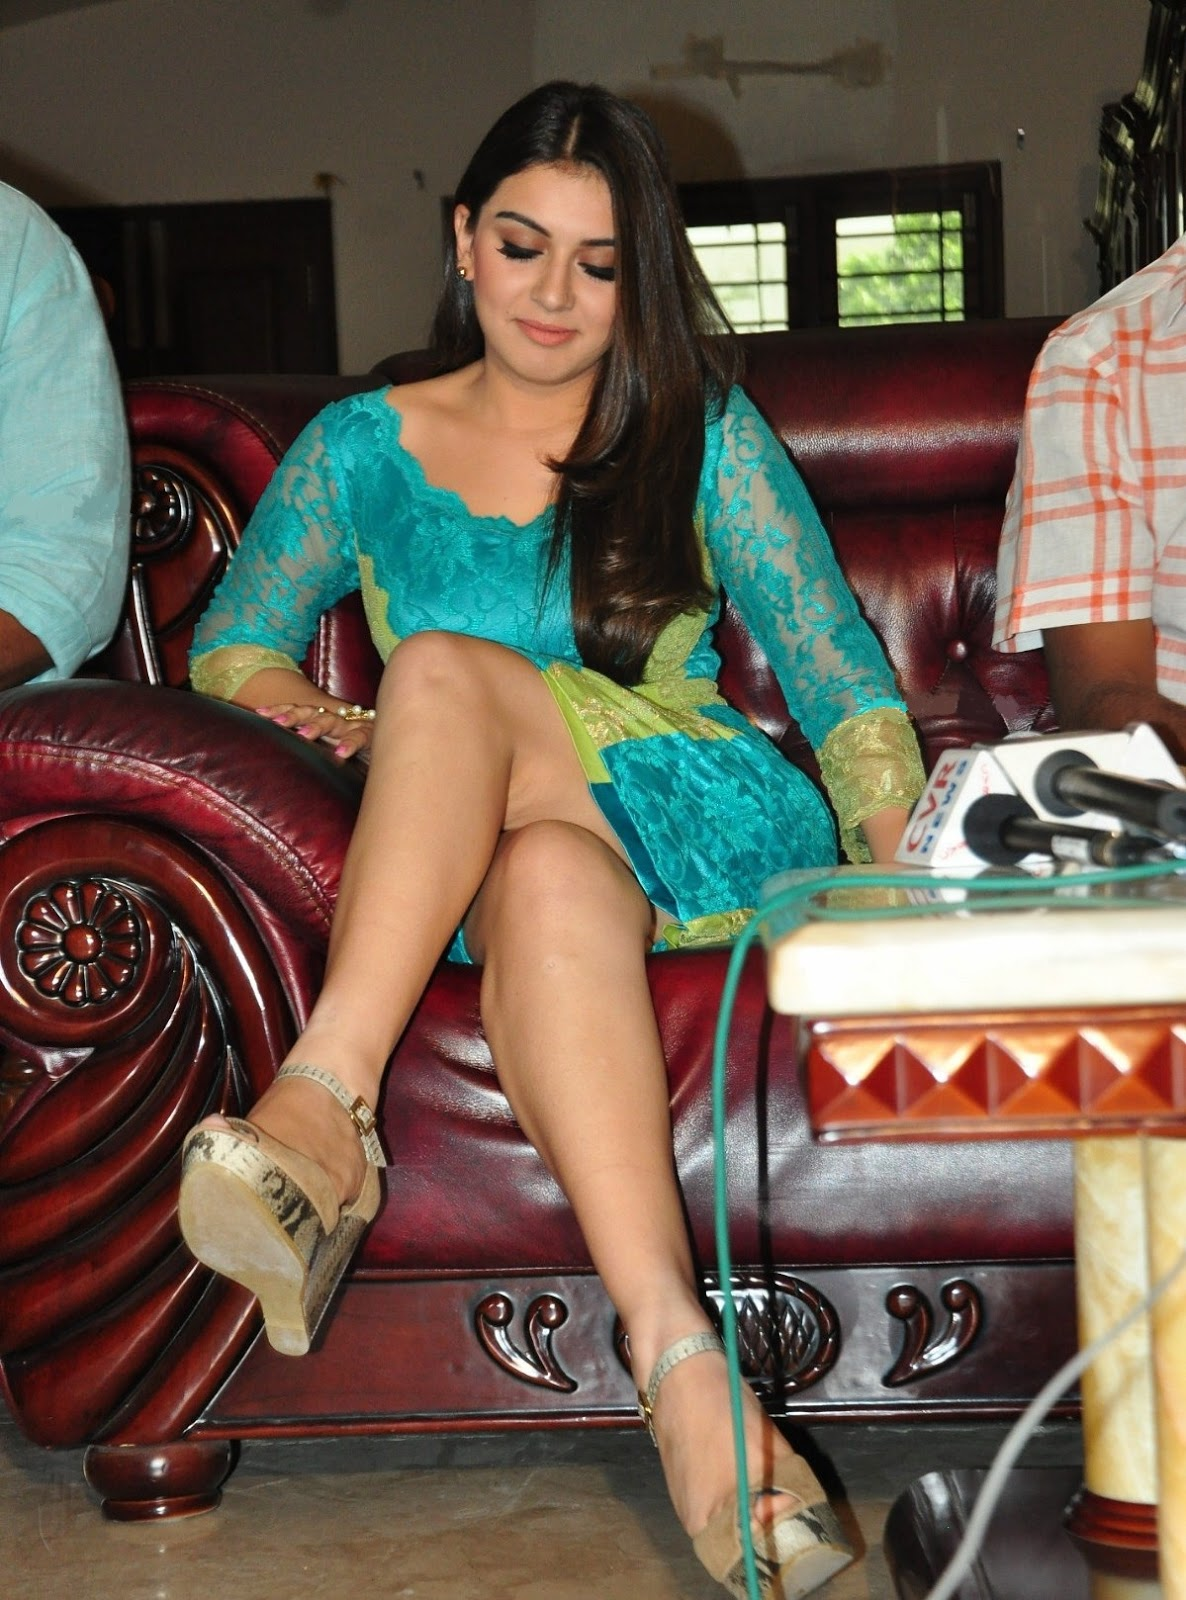 Hansika motwani high quality nude pictures think